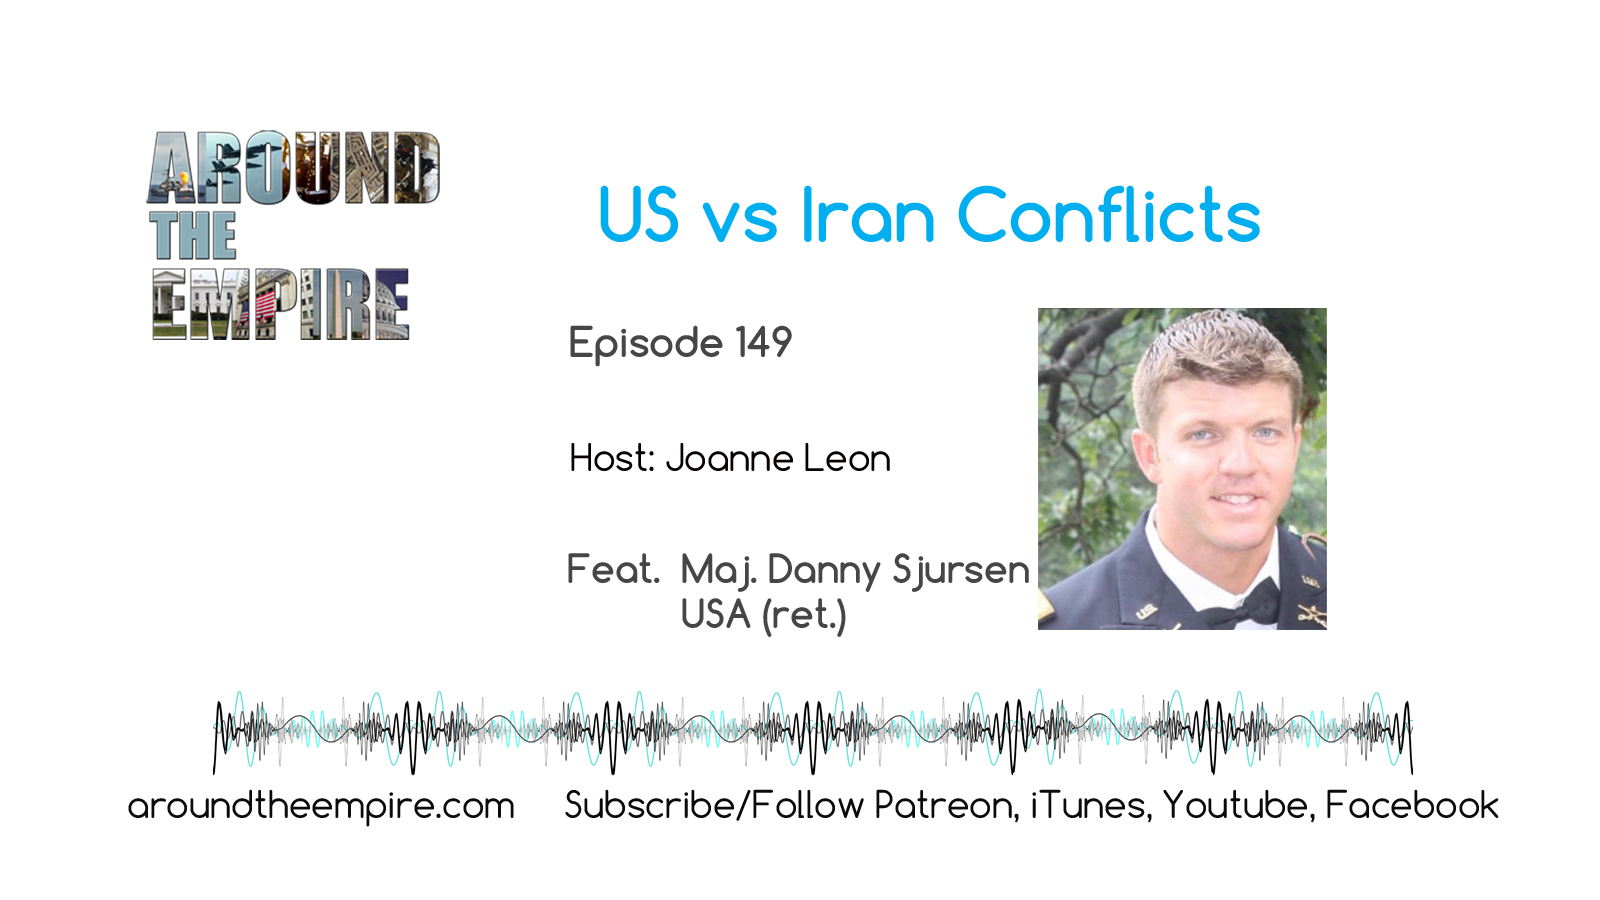 Ep 149 US vs Iran Conflicts feat Danny Sjursen